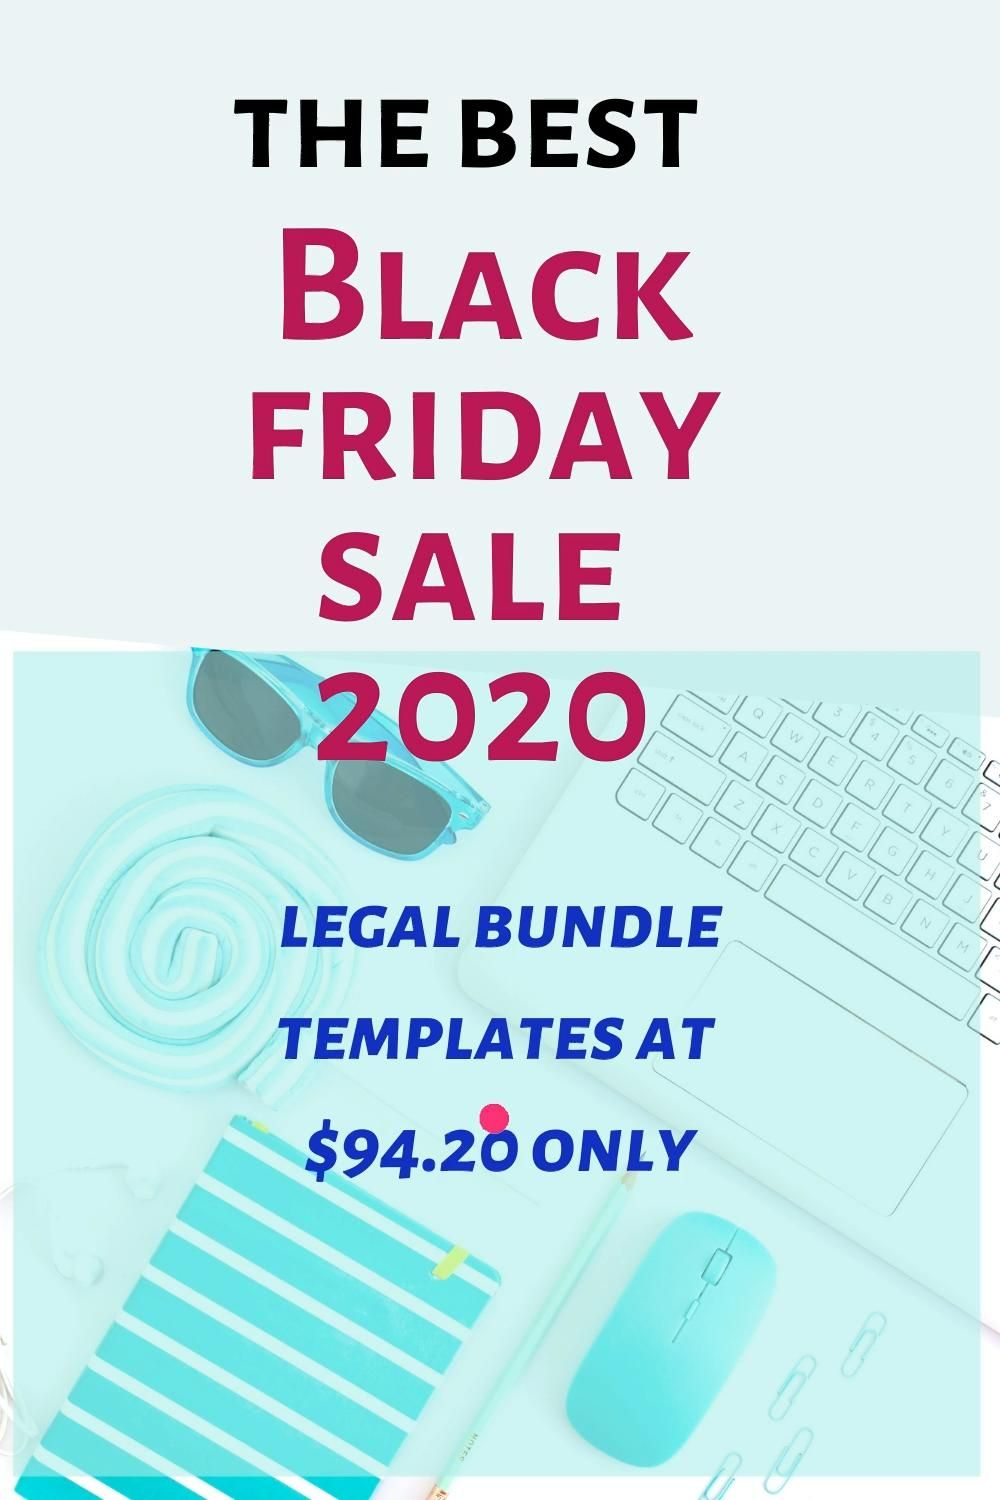 Here you will get best Black Friday Deals in 2020. Legal byndle template is at $94 only.Grab now. #blackfridaysale2020 #blackFridayDeals #Legalbundleatlowcost # savemoremoney